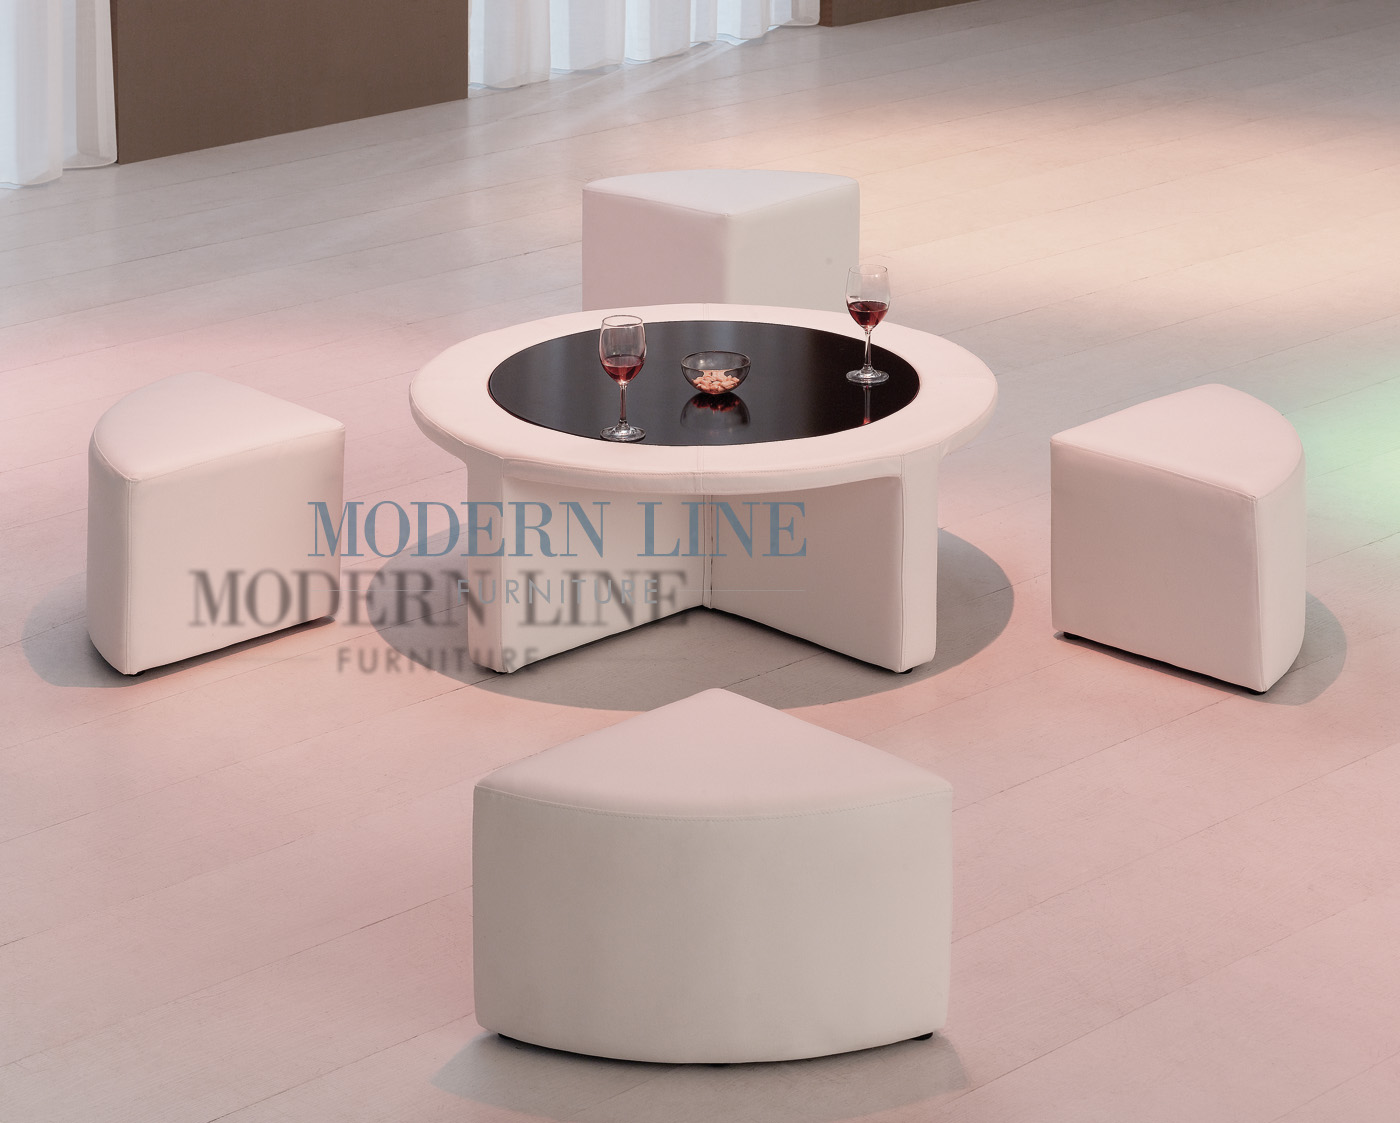 Modern white side table - Modern Line Furniture Commercial Furniture Custom Made Furniture Seating Collection Coffee Side Tables Model 7010 Modern White Vinyl Round